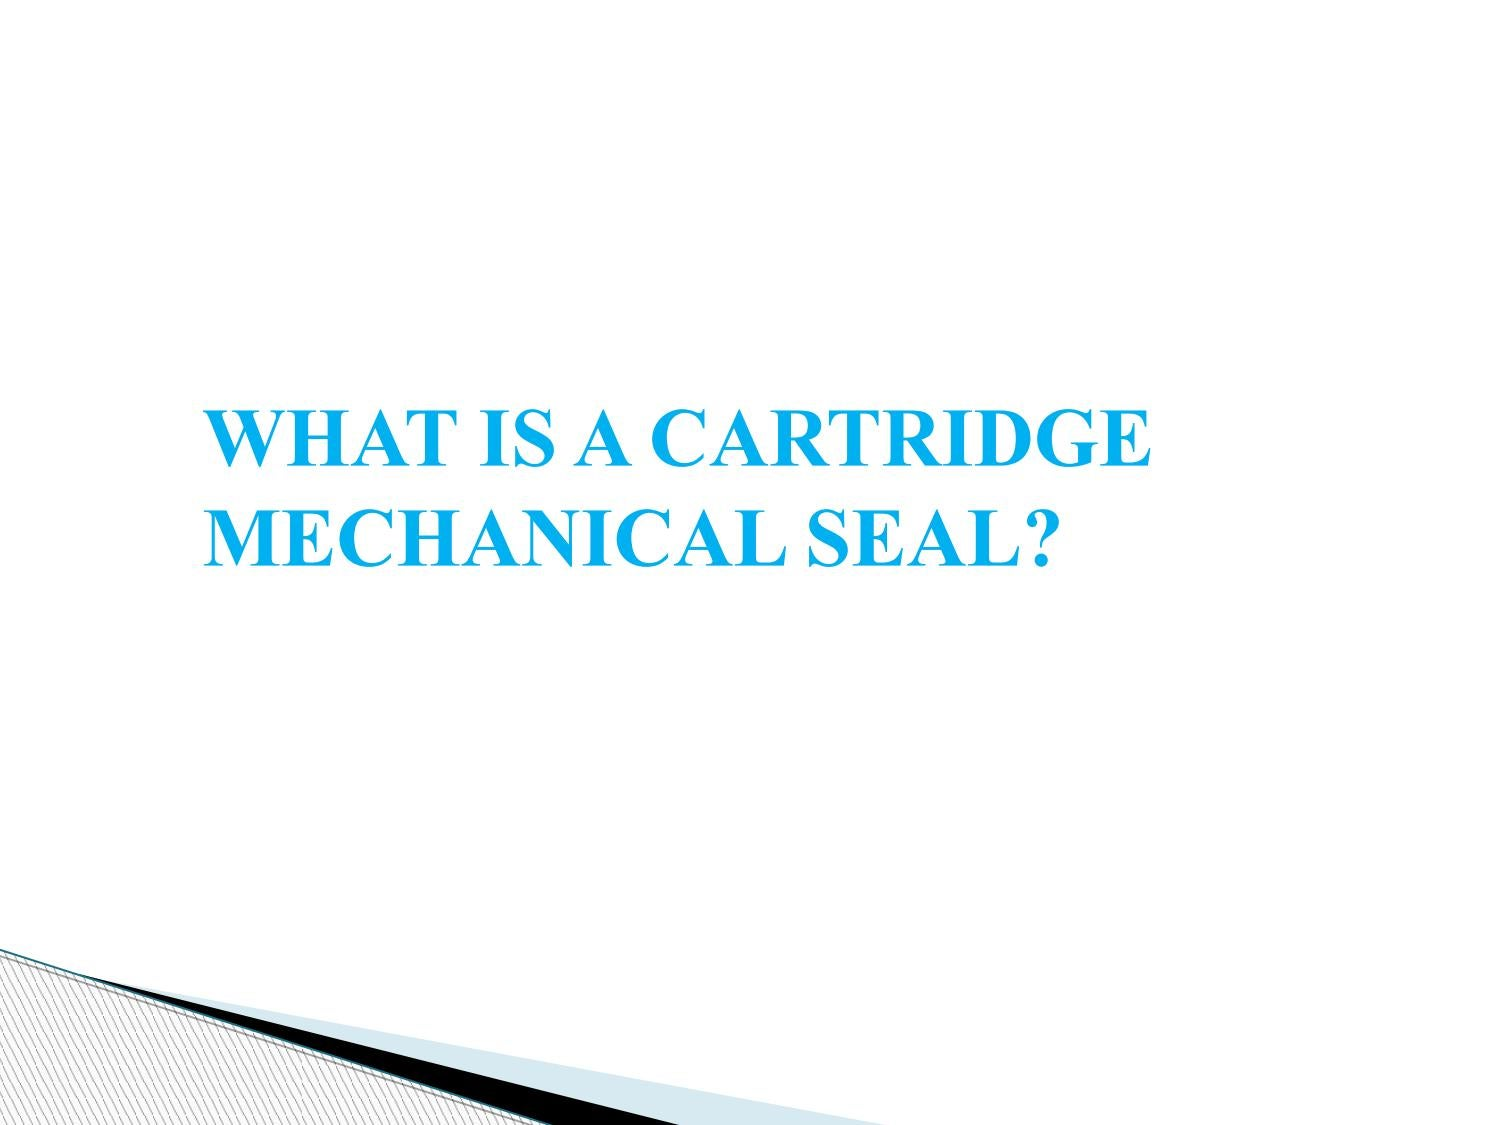 What is a cartridge